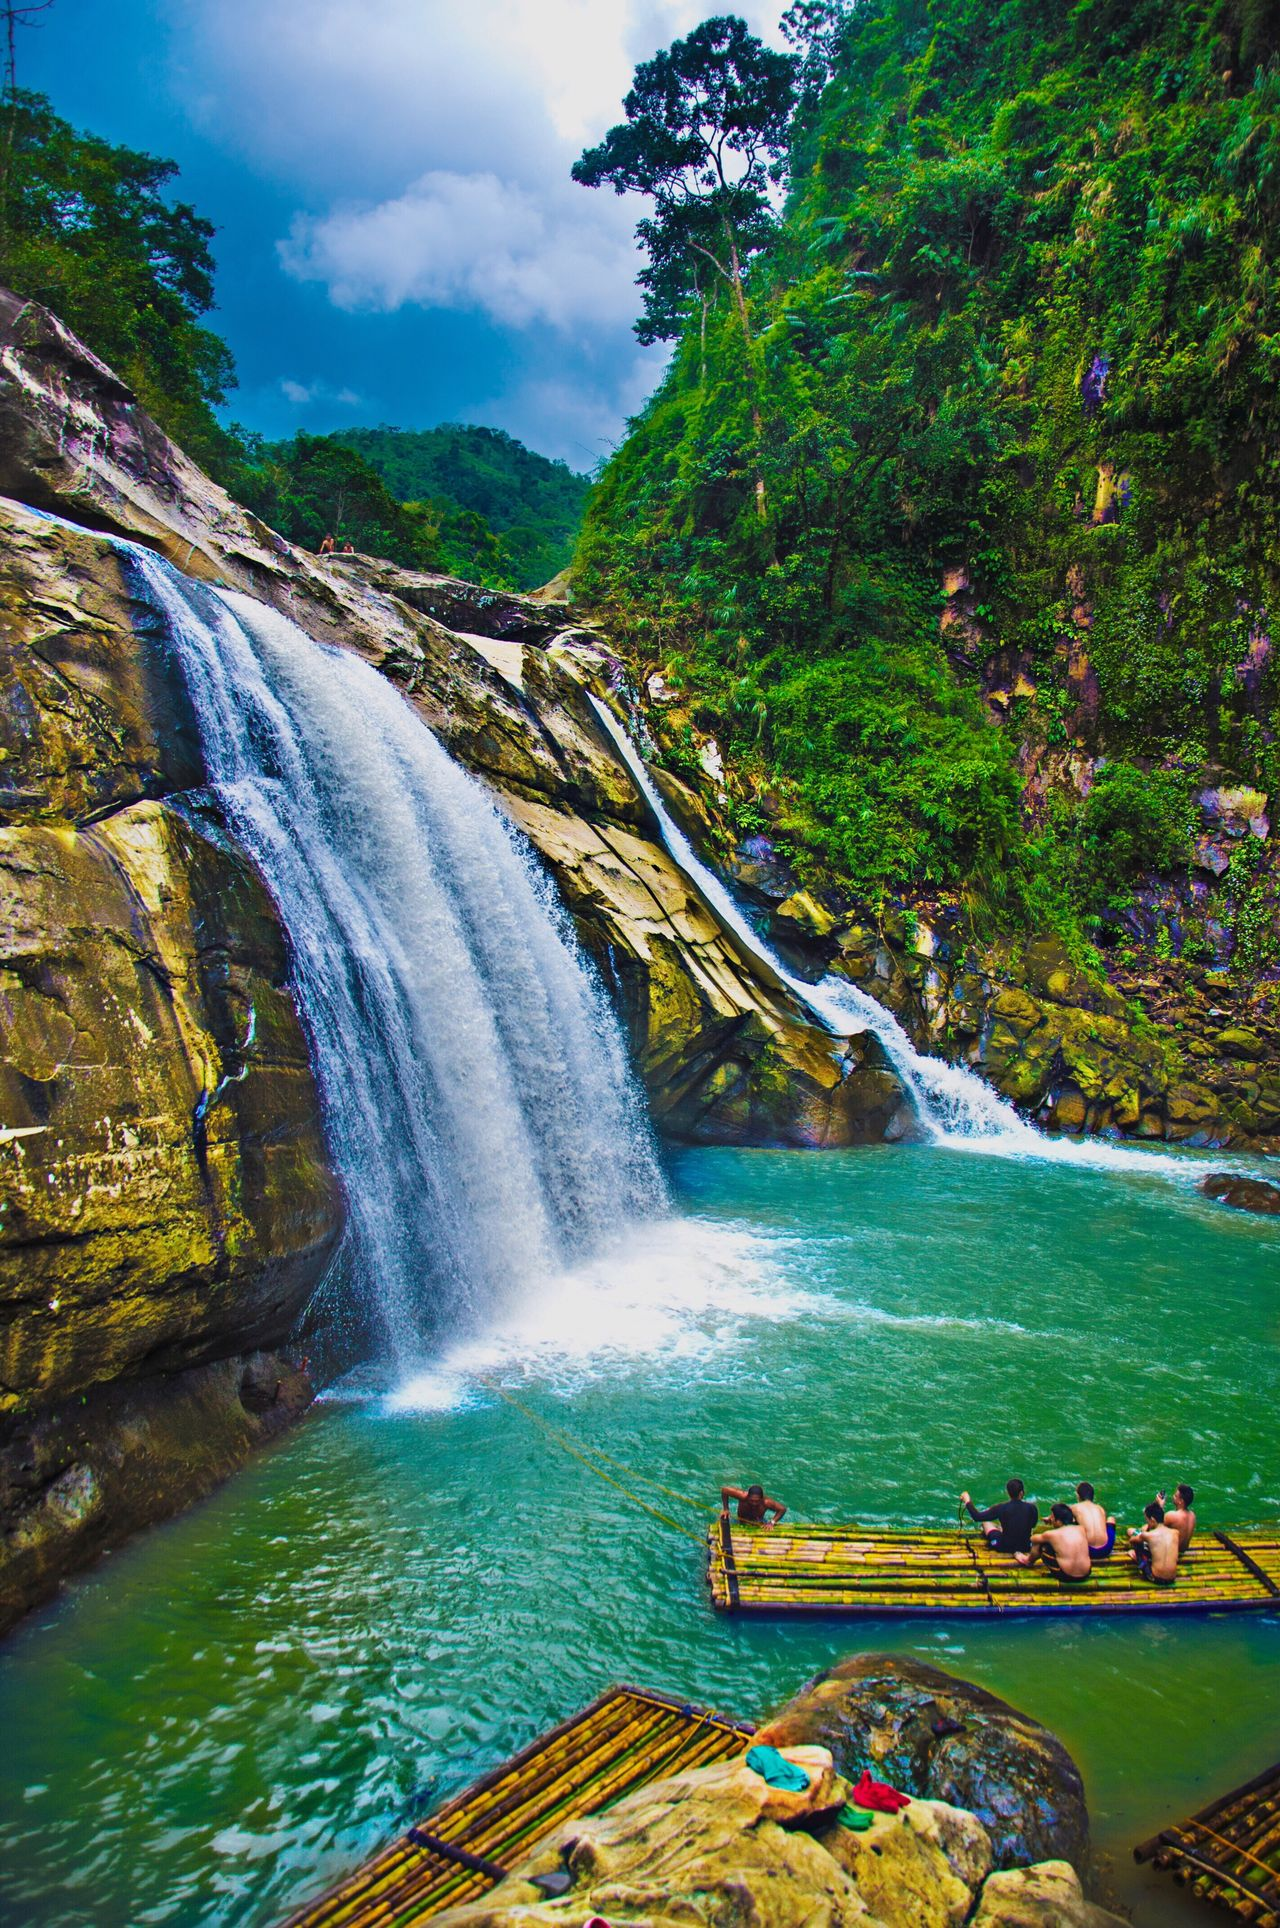 TANGADAN FALLS, LA UNION, PHILIPPINES Water Waterfall Scenics Nature Beauty In Nature Tree Long Exposure Launion Burn Beauty Vacations Stream - Flowing Water Hot Spring Motion Flowing Water Flowing Idyllic Outdoors Tourism Sky No People Rock - Object Vacations River Day